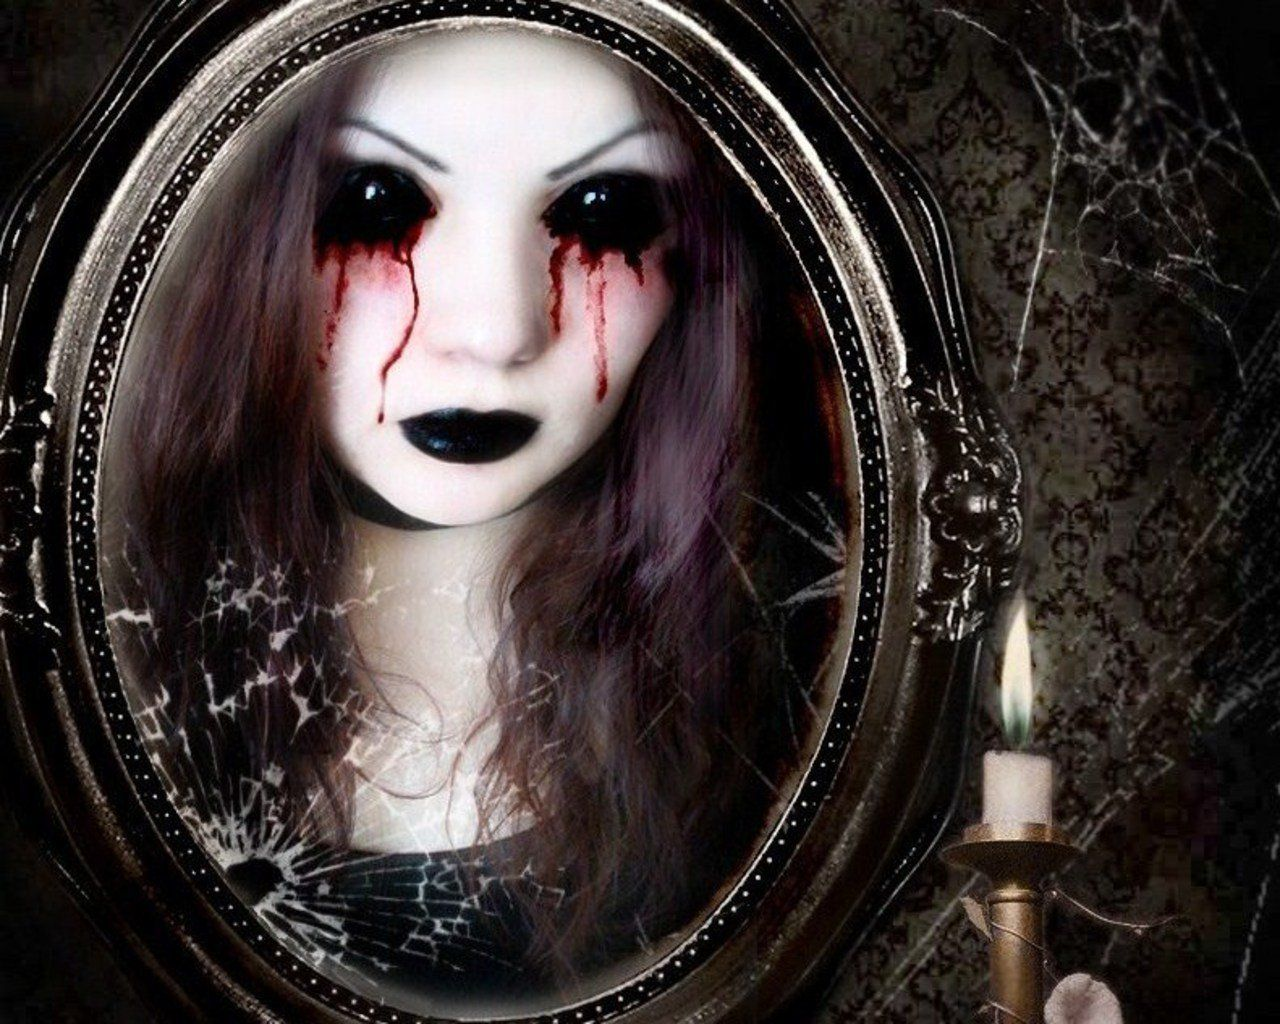 Face Bloody Mary ~ There she found herself, trapped as a face in a ...